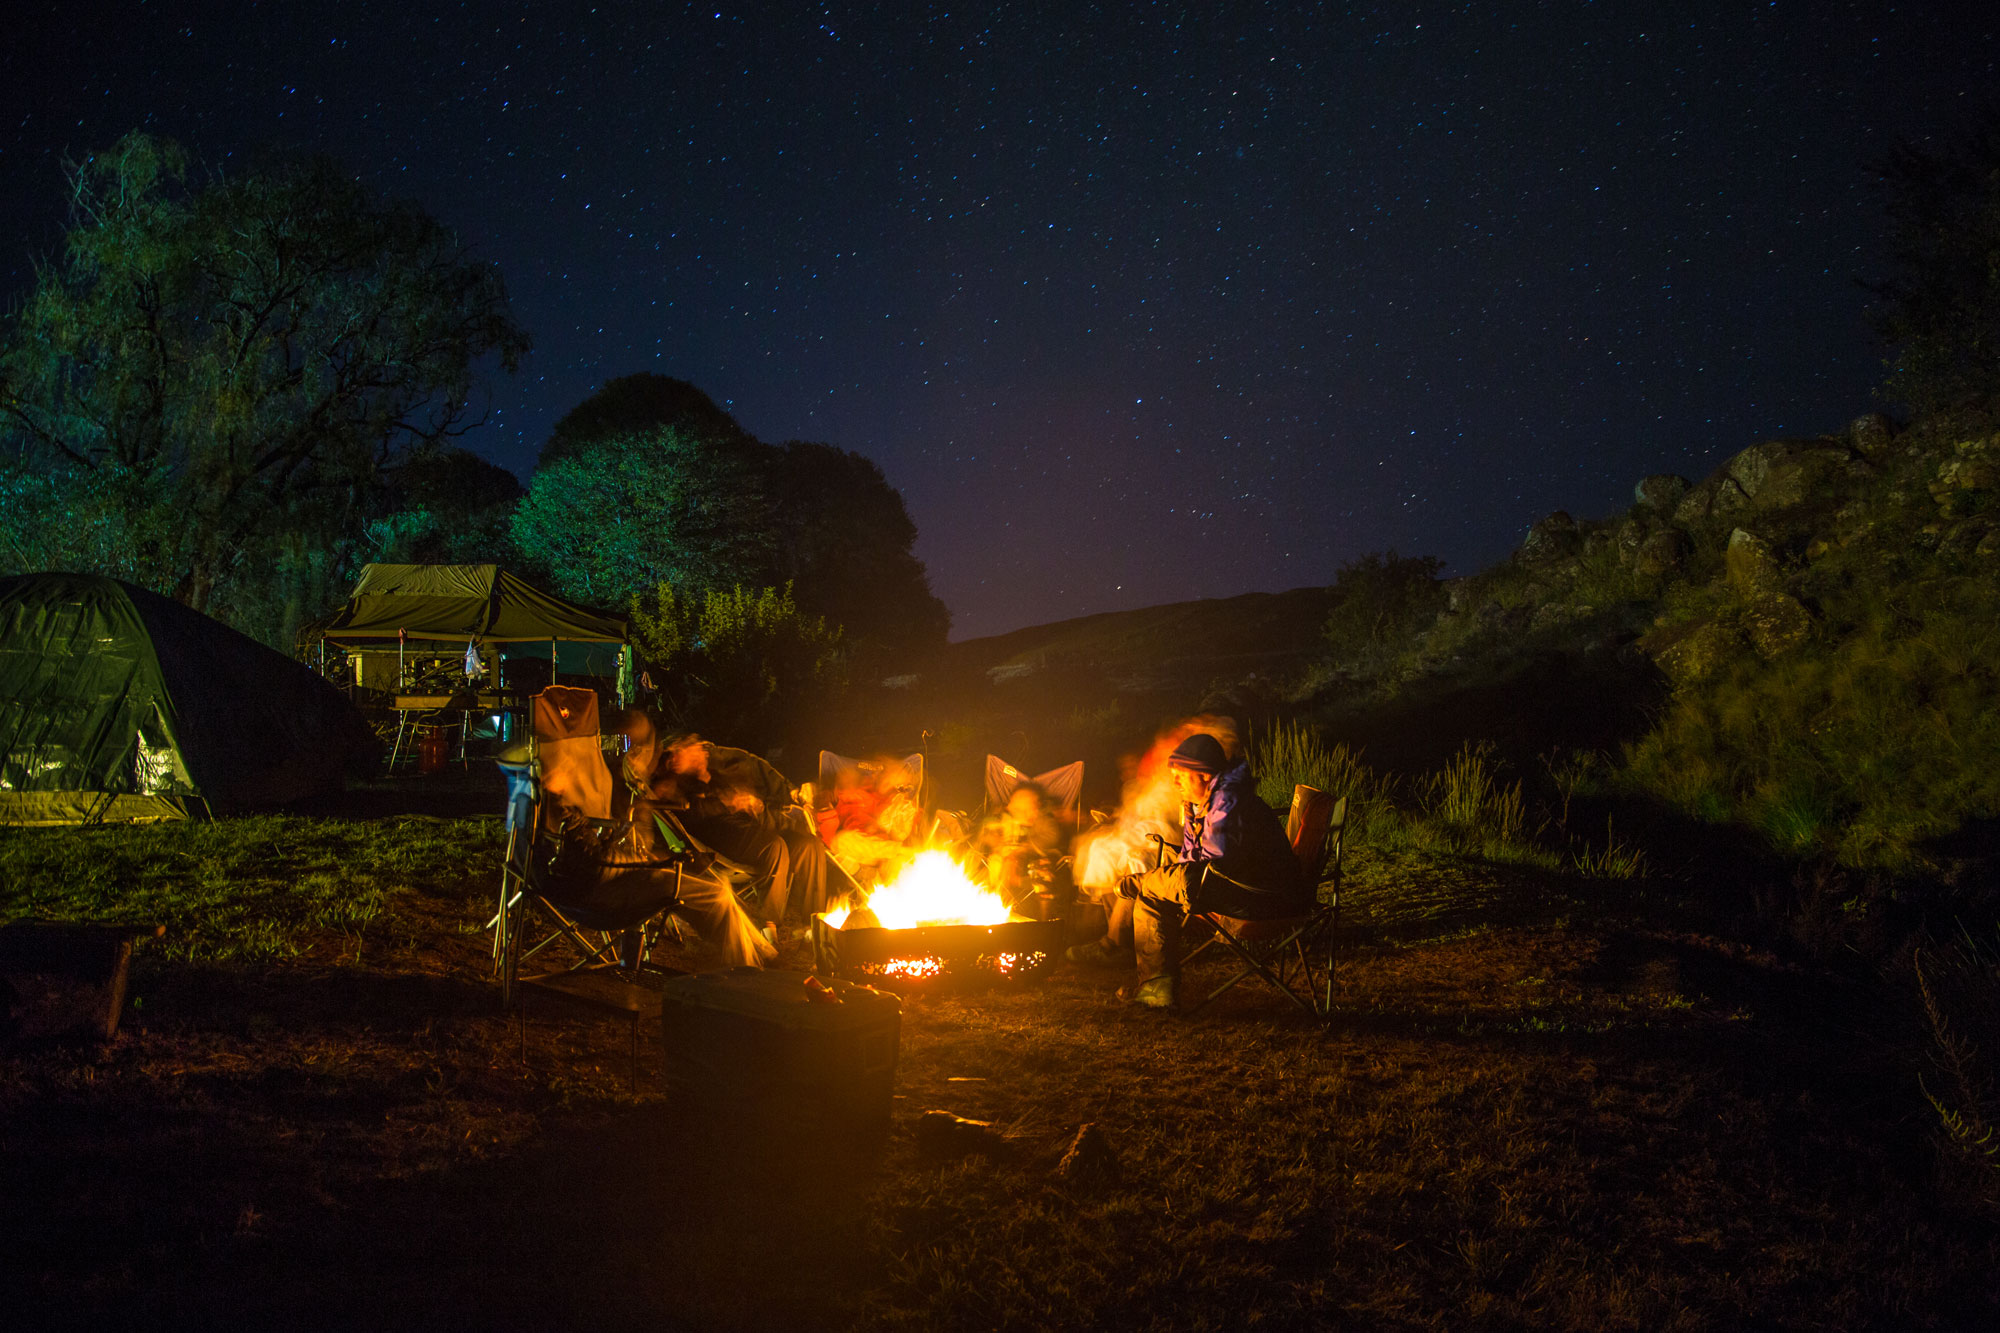 Khotso Lodge & Horse Trails | Campsite & Overlanders